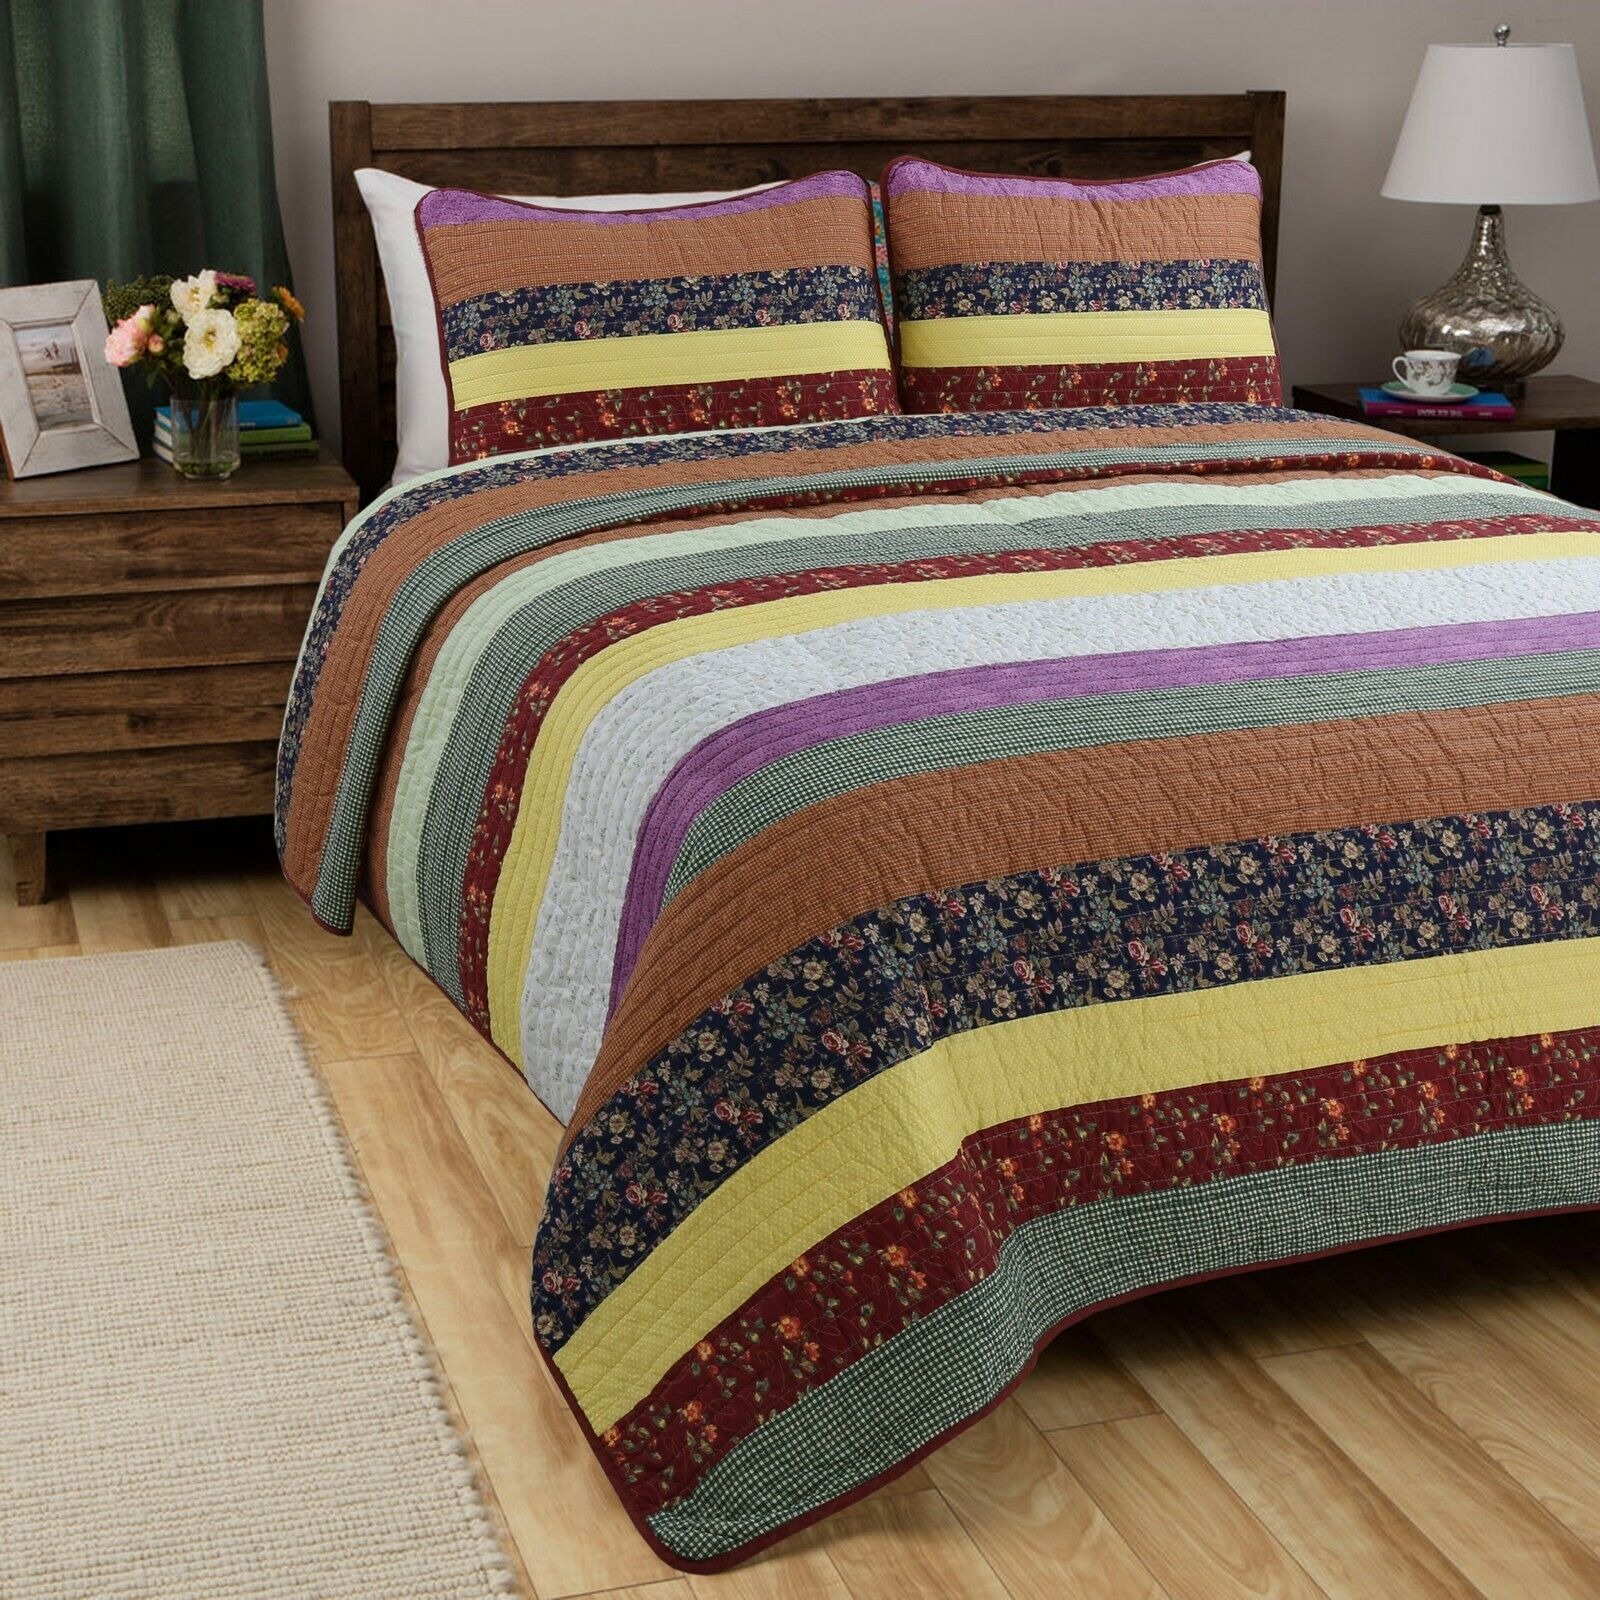 Sagamore Striped 100%Cotton 3-Piece Quilt Set, Bedspread, Coverlet